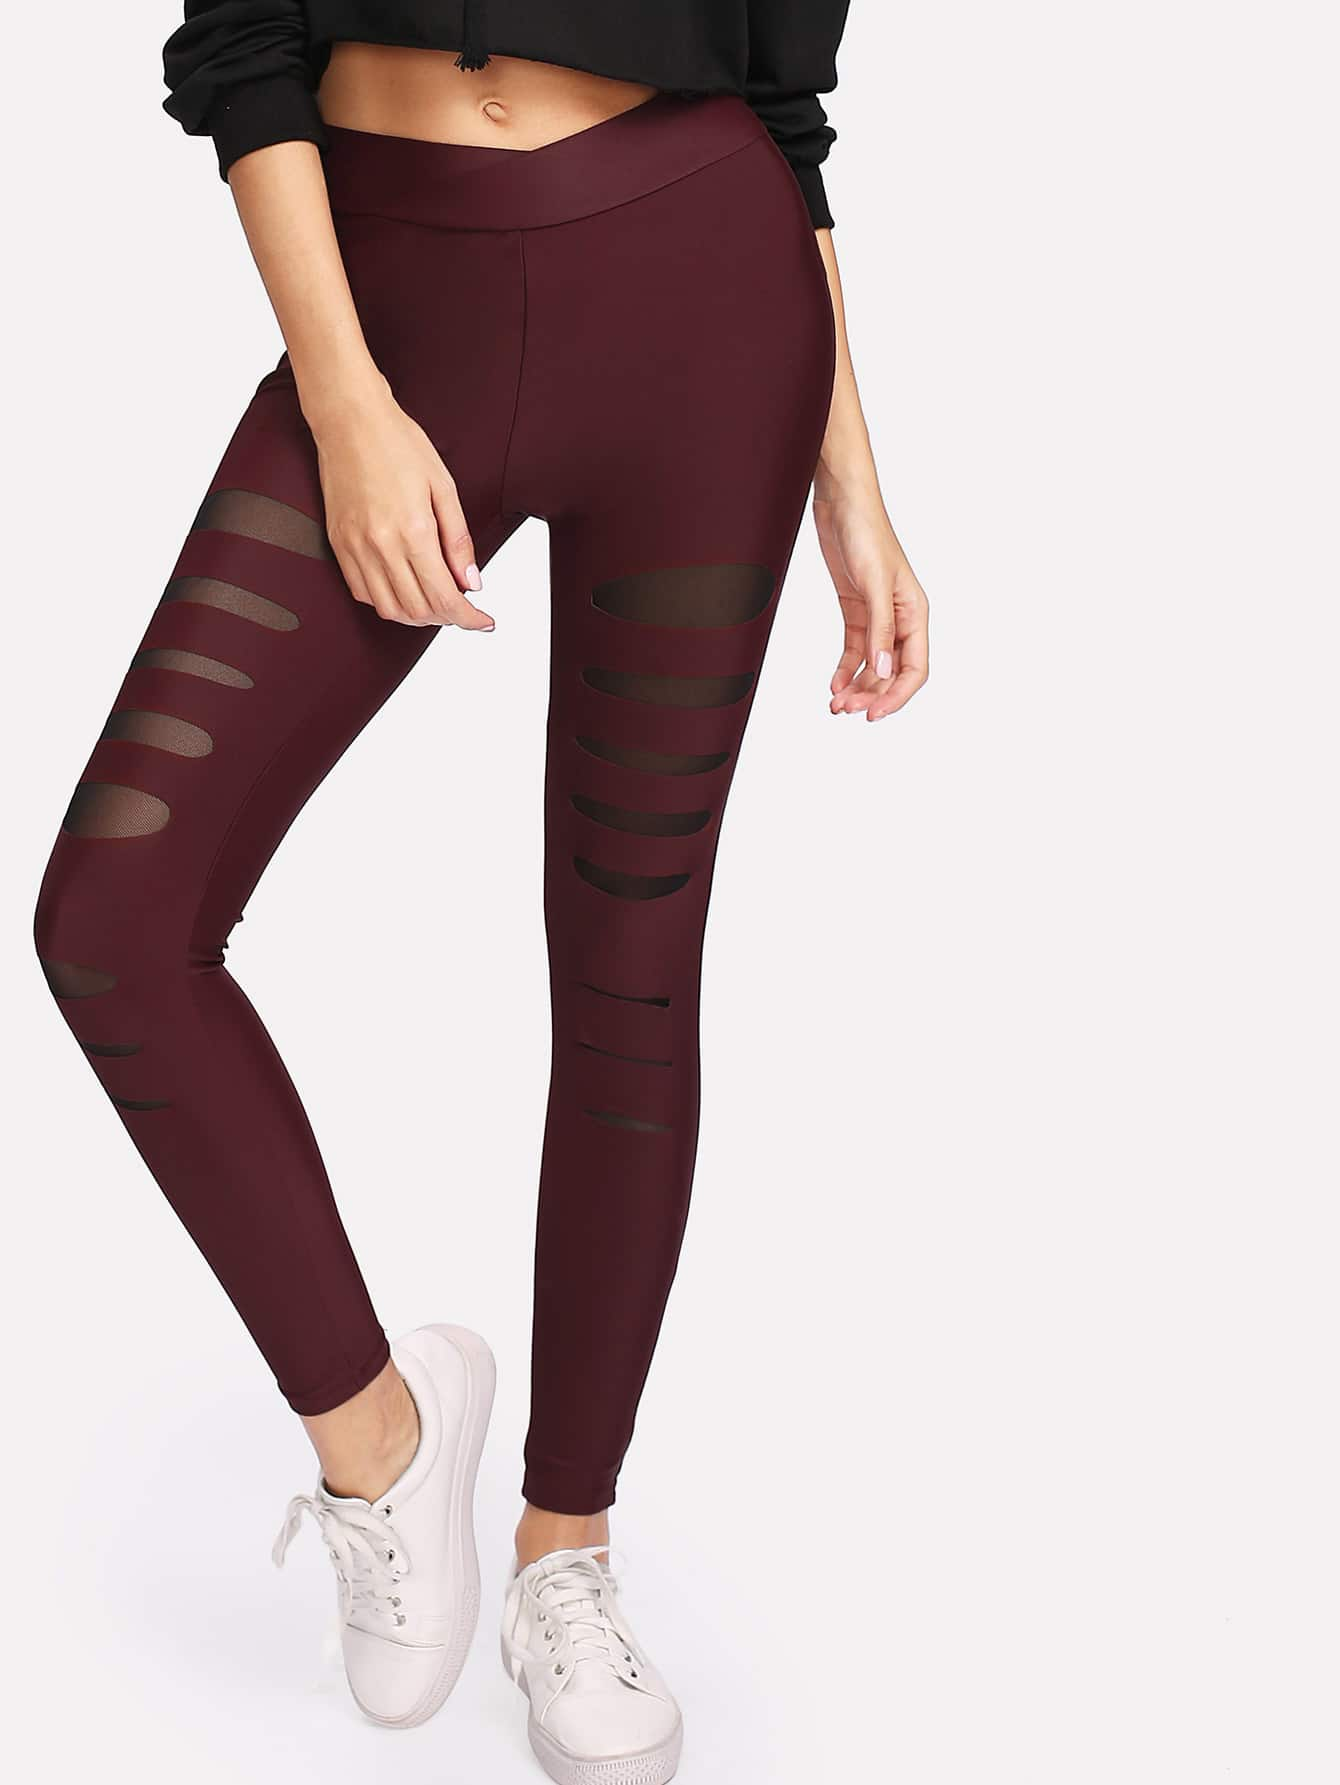 Mesh Insert Ripped Leggings side panel mesh insert camo leggings